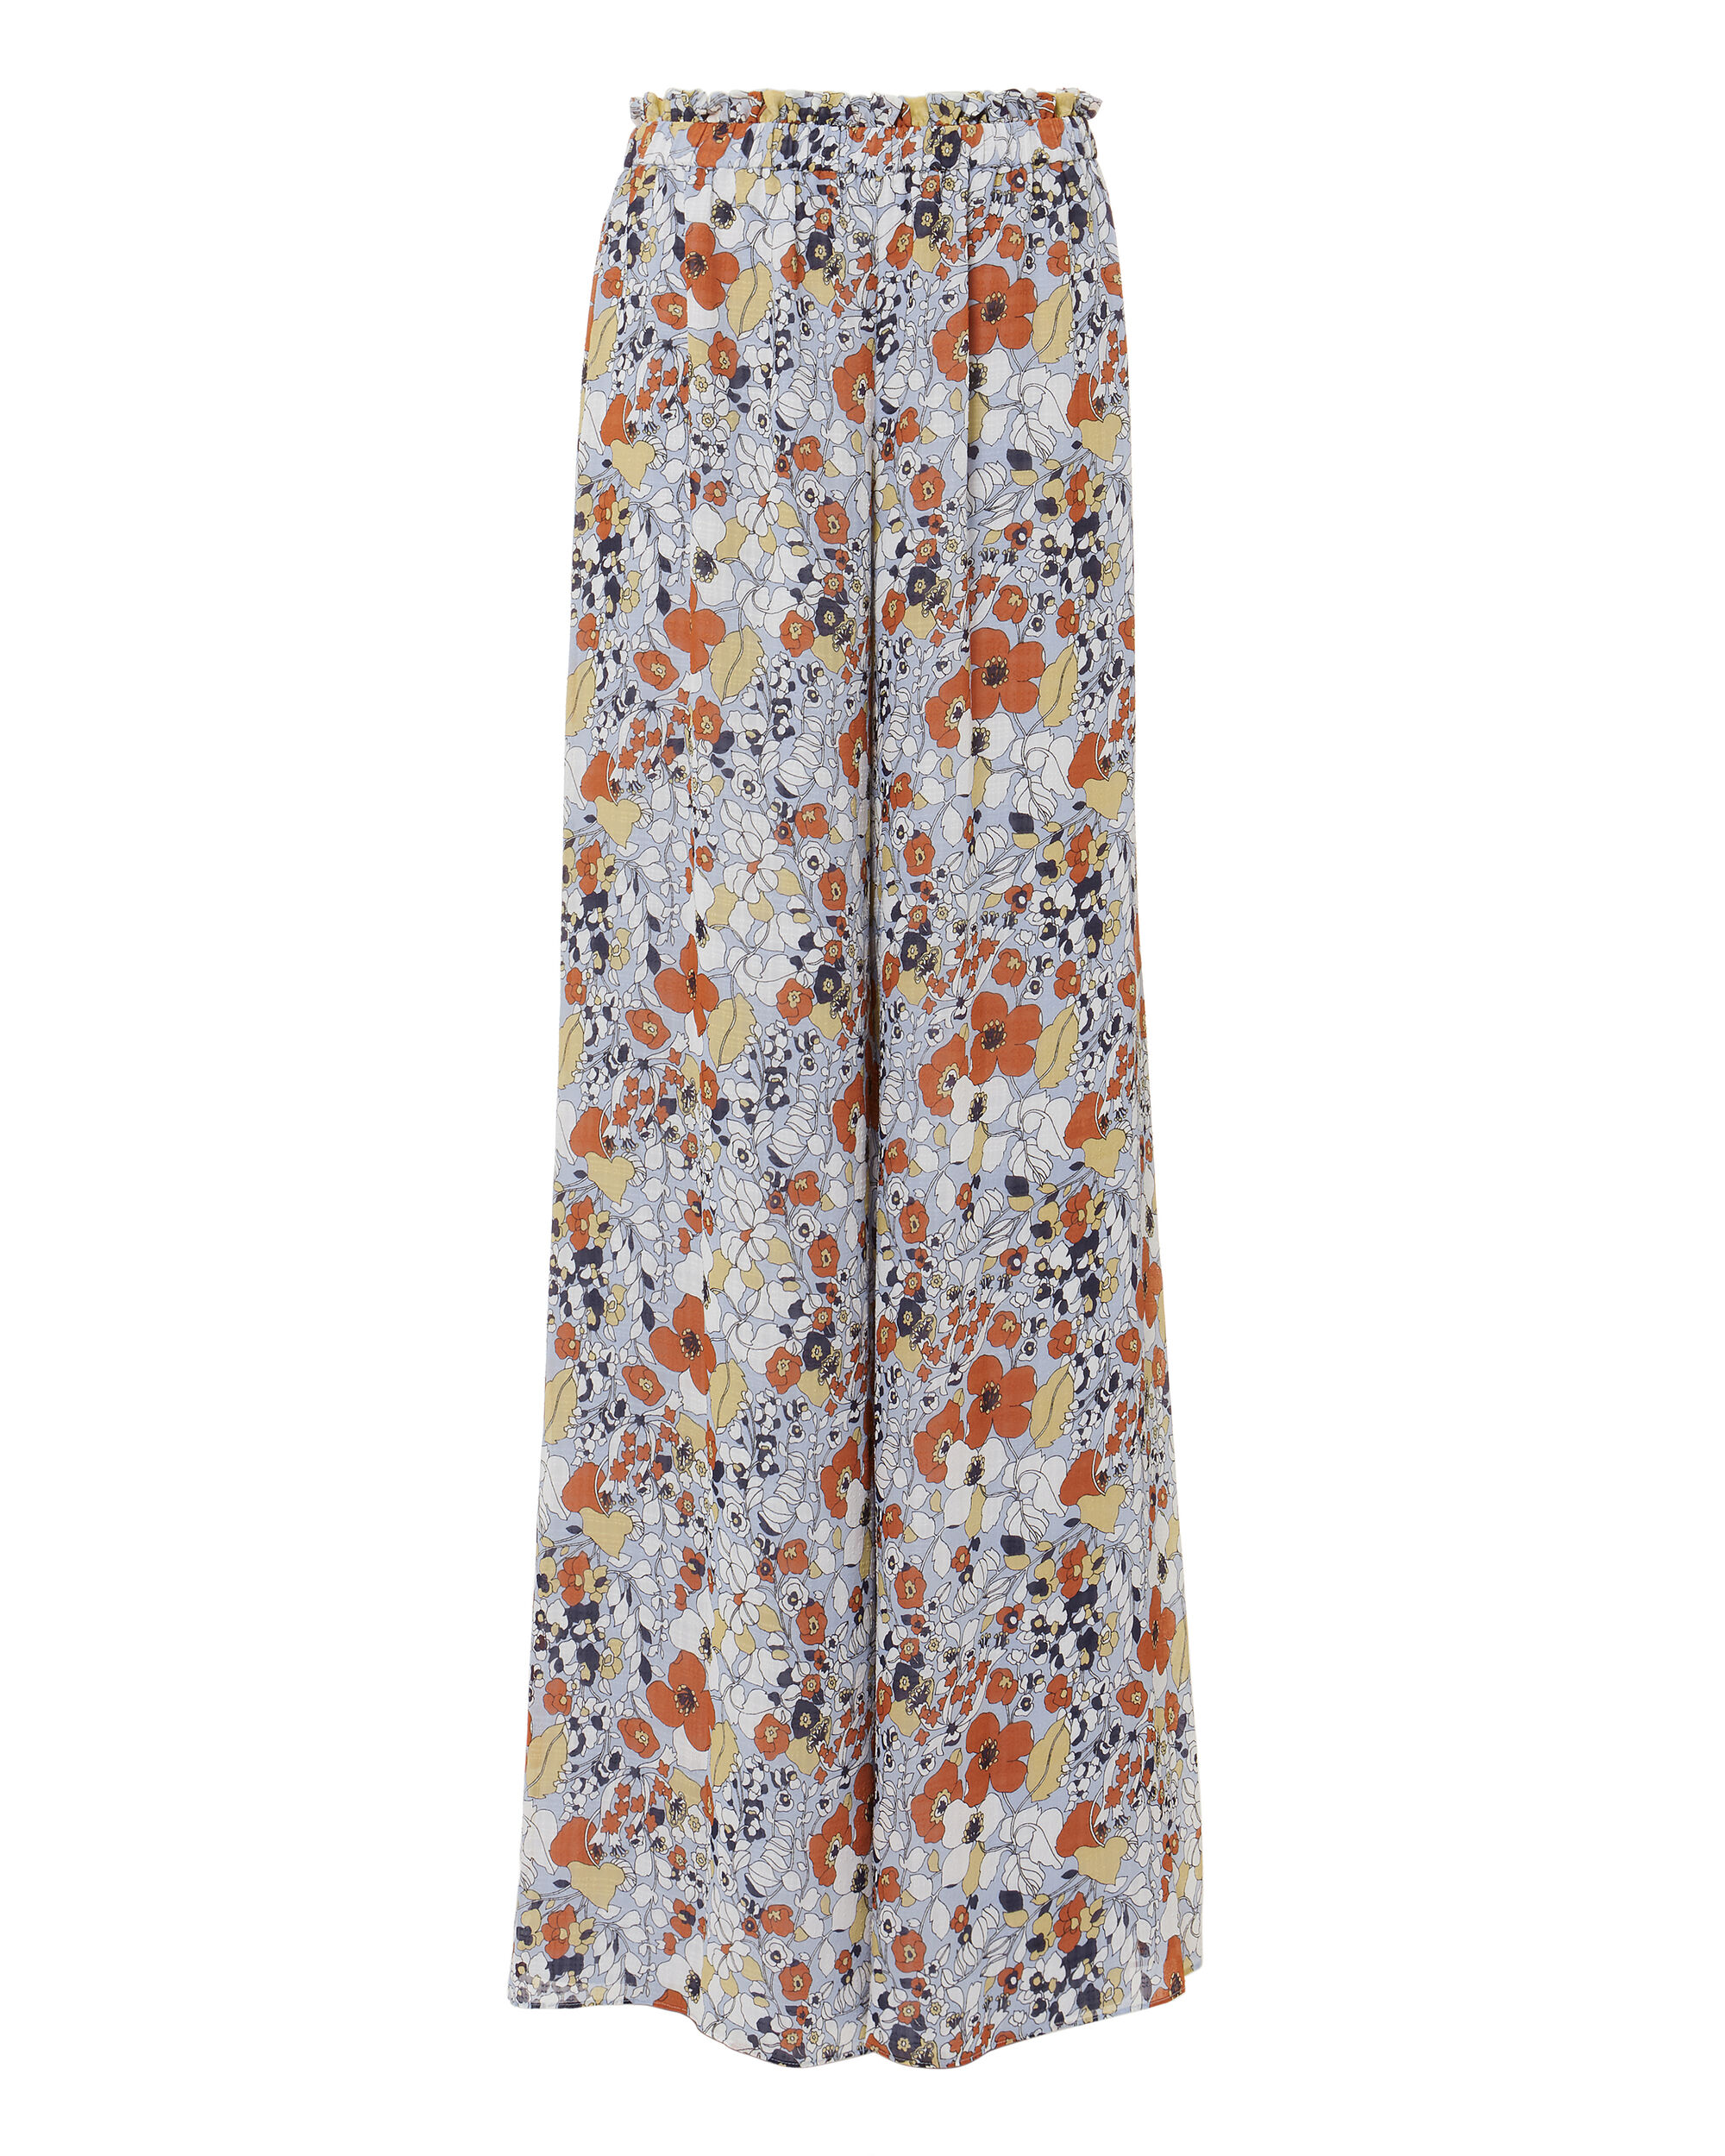 Zain Floral Pants, MULTI, hi-res